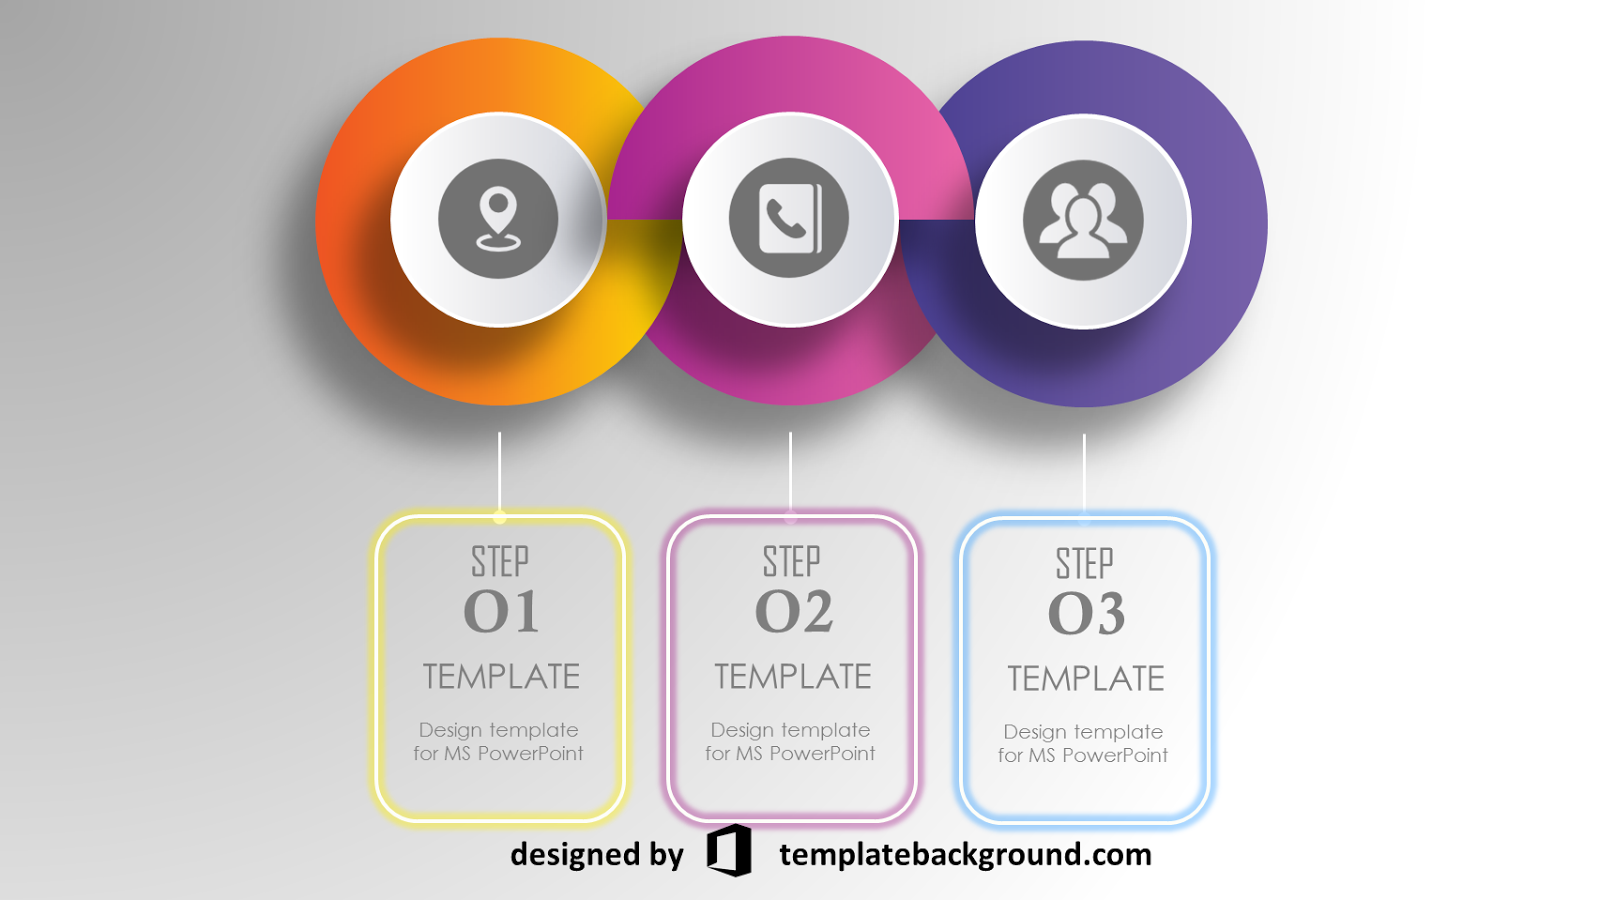 Free 3D Animated Powerpoint Templates Download - Download PNG HD For Powerpoint